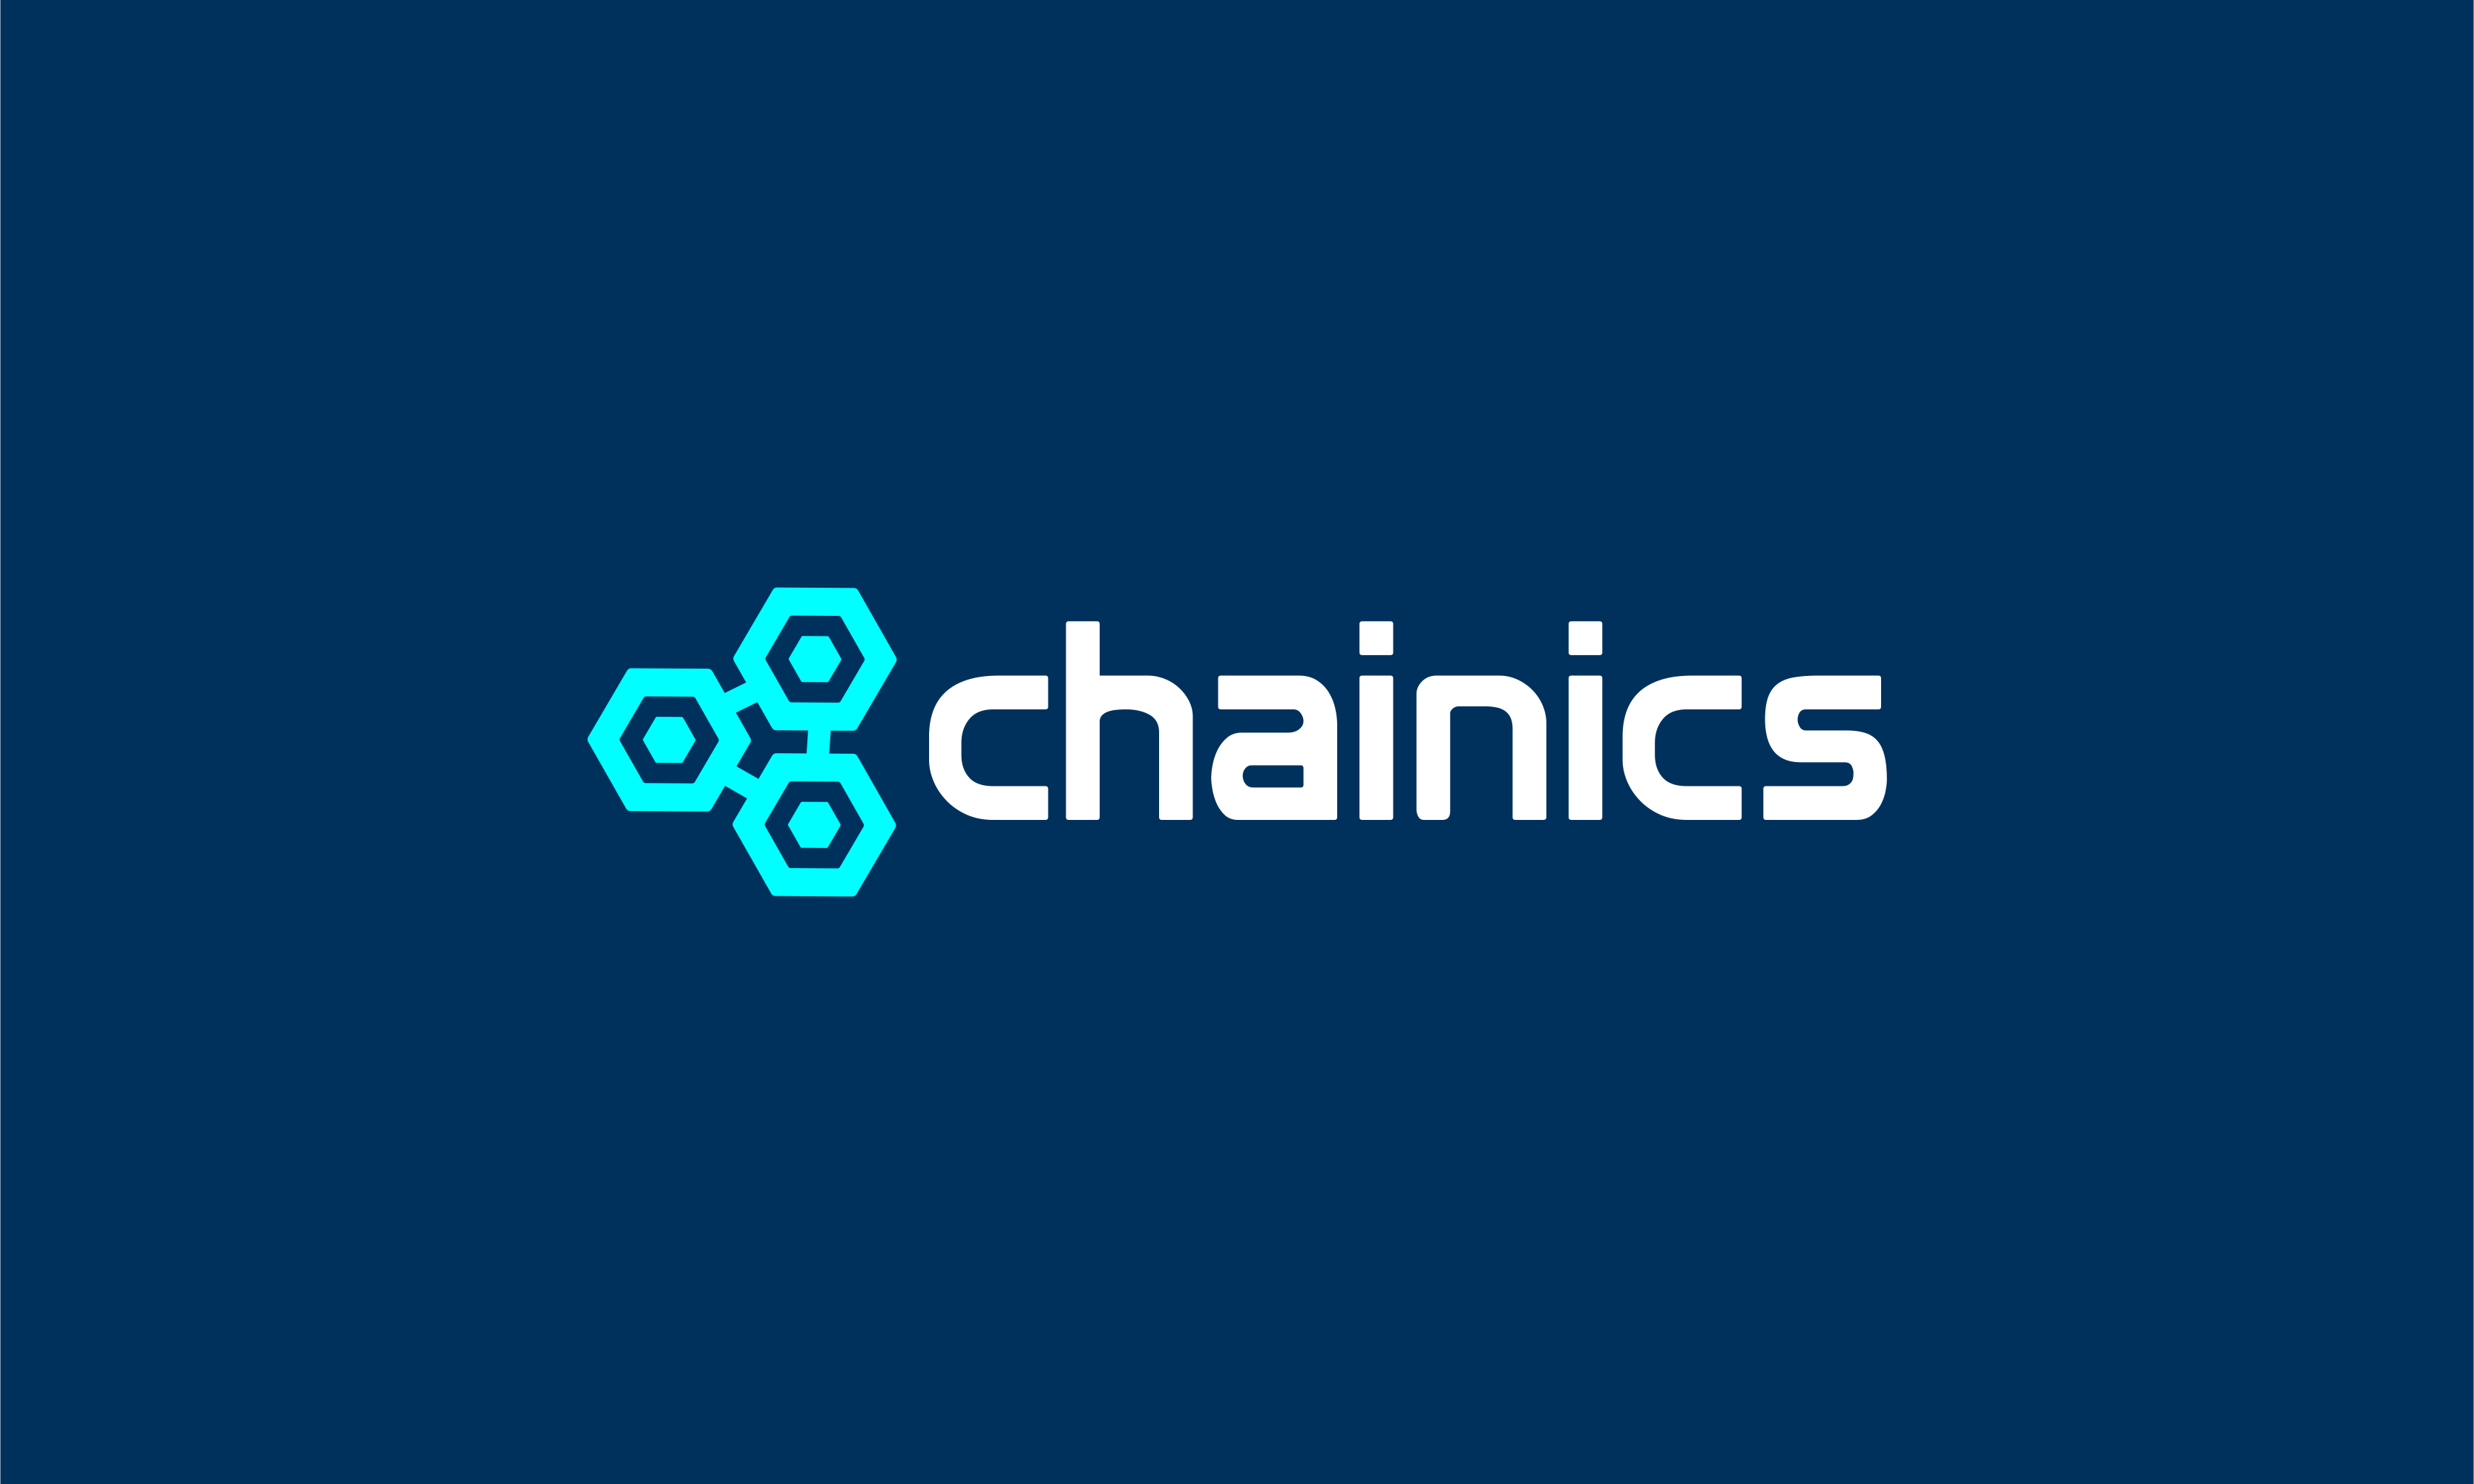 Chainics - Cryptocurrency domain name for sale